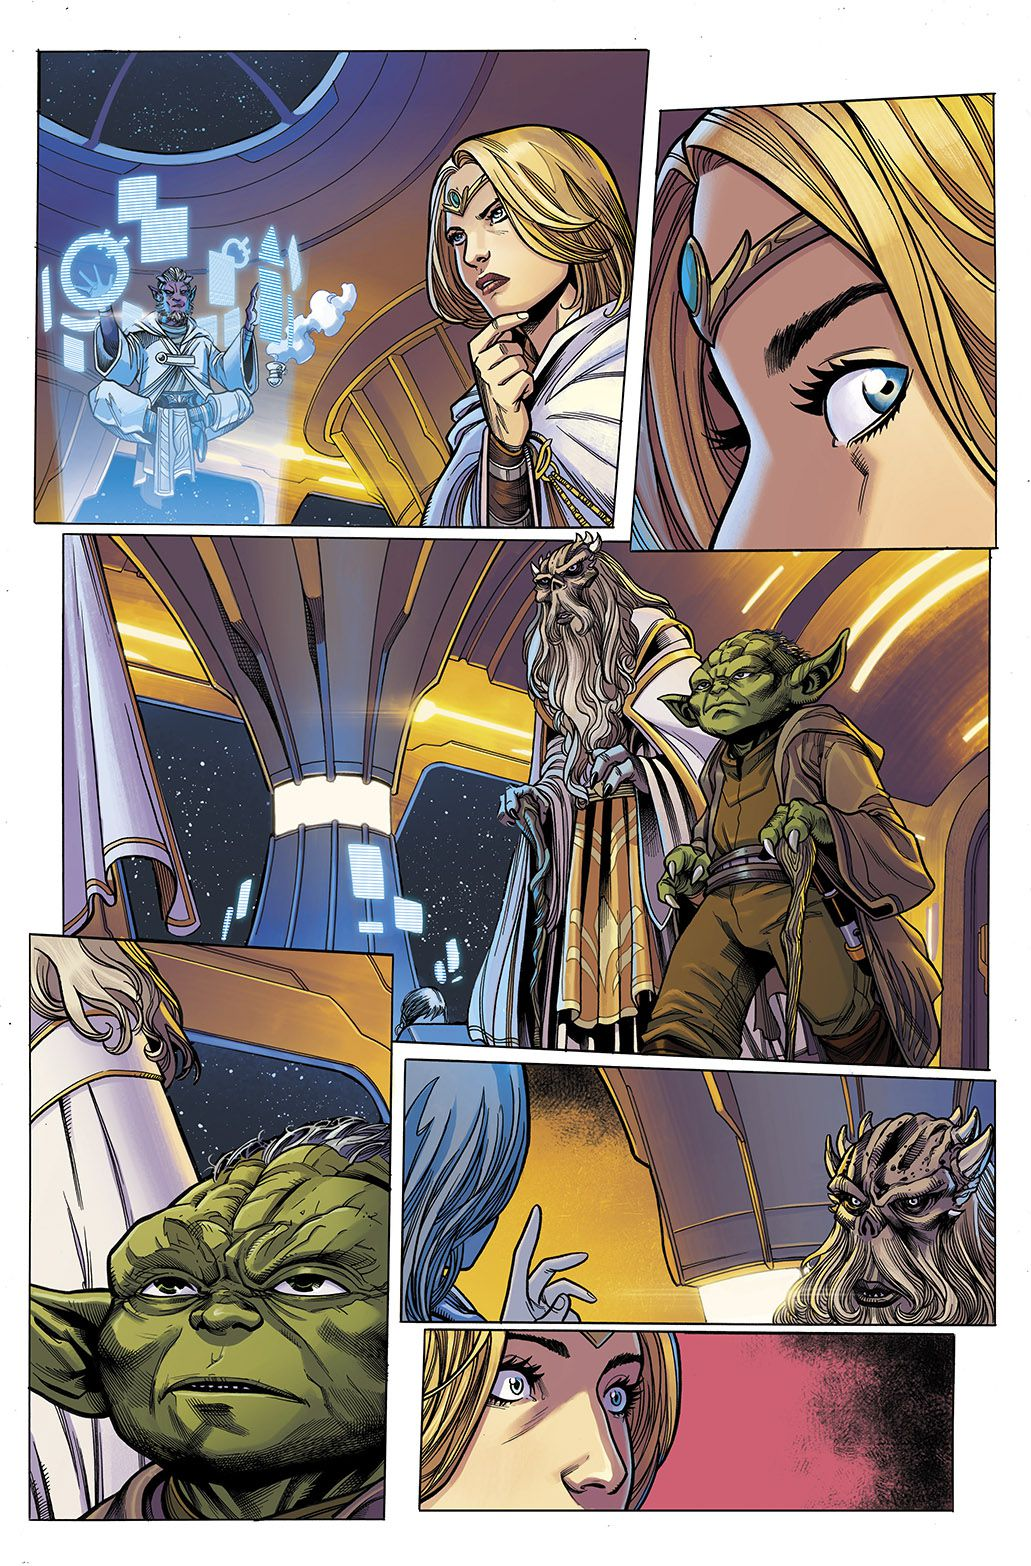 Jedi Master Avar Kriss looks away in surprise from the levitating Estala Maru to see Grandmasters Veter and Yoda approaching, in Star Wars: The High Republic #1, Marvel Comics (2021).